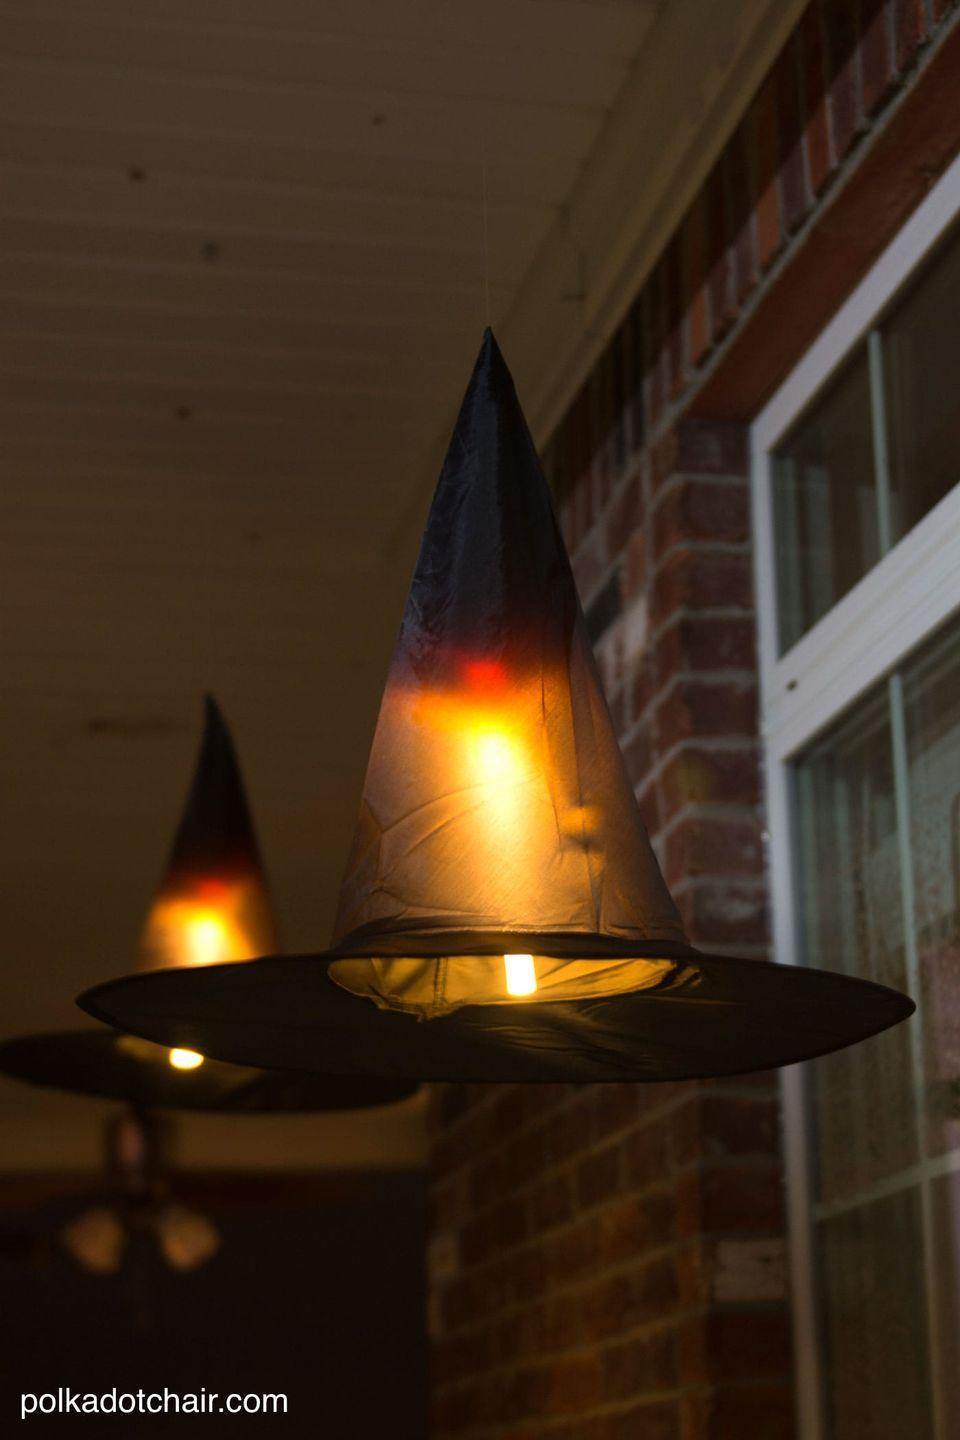 "<p>Add some magic to the top half of your porch with these hanging witch hat lanterns. Getting the hats to levitate is as simple as tying them with fishing line. </p><p><a href=""https://www.polkadotchair.com/floating-witch-hat-luminaries/"" rel=""nofollow noopener"" target=""_blank"" data-ylk=""slk:Get the tutorial at Polkadot Chair »"" class=""link rapid-noclick-resp""><em>Get the tutorial at Polkadot Chair »</em></a></p>"